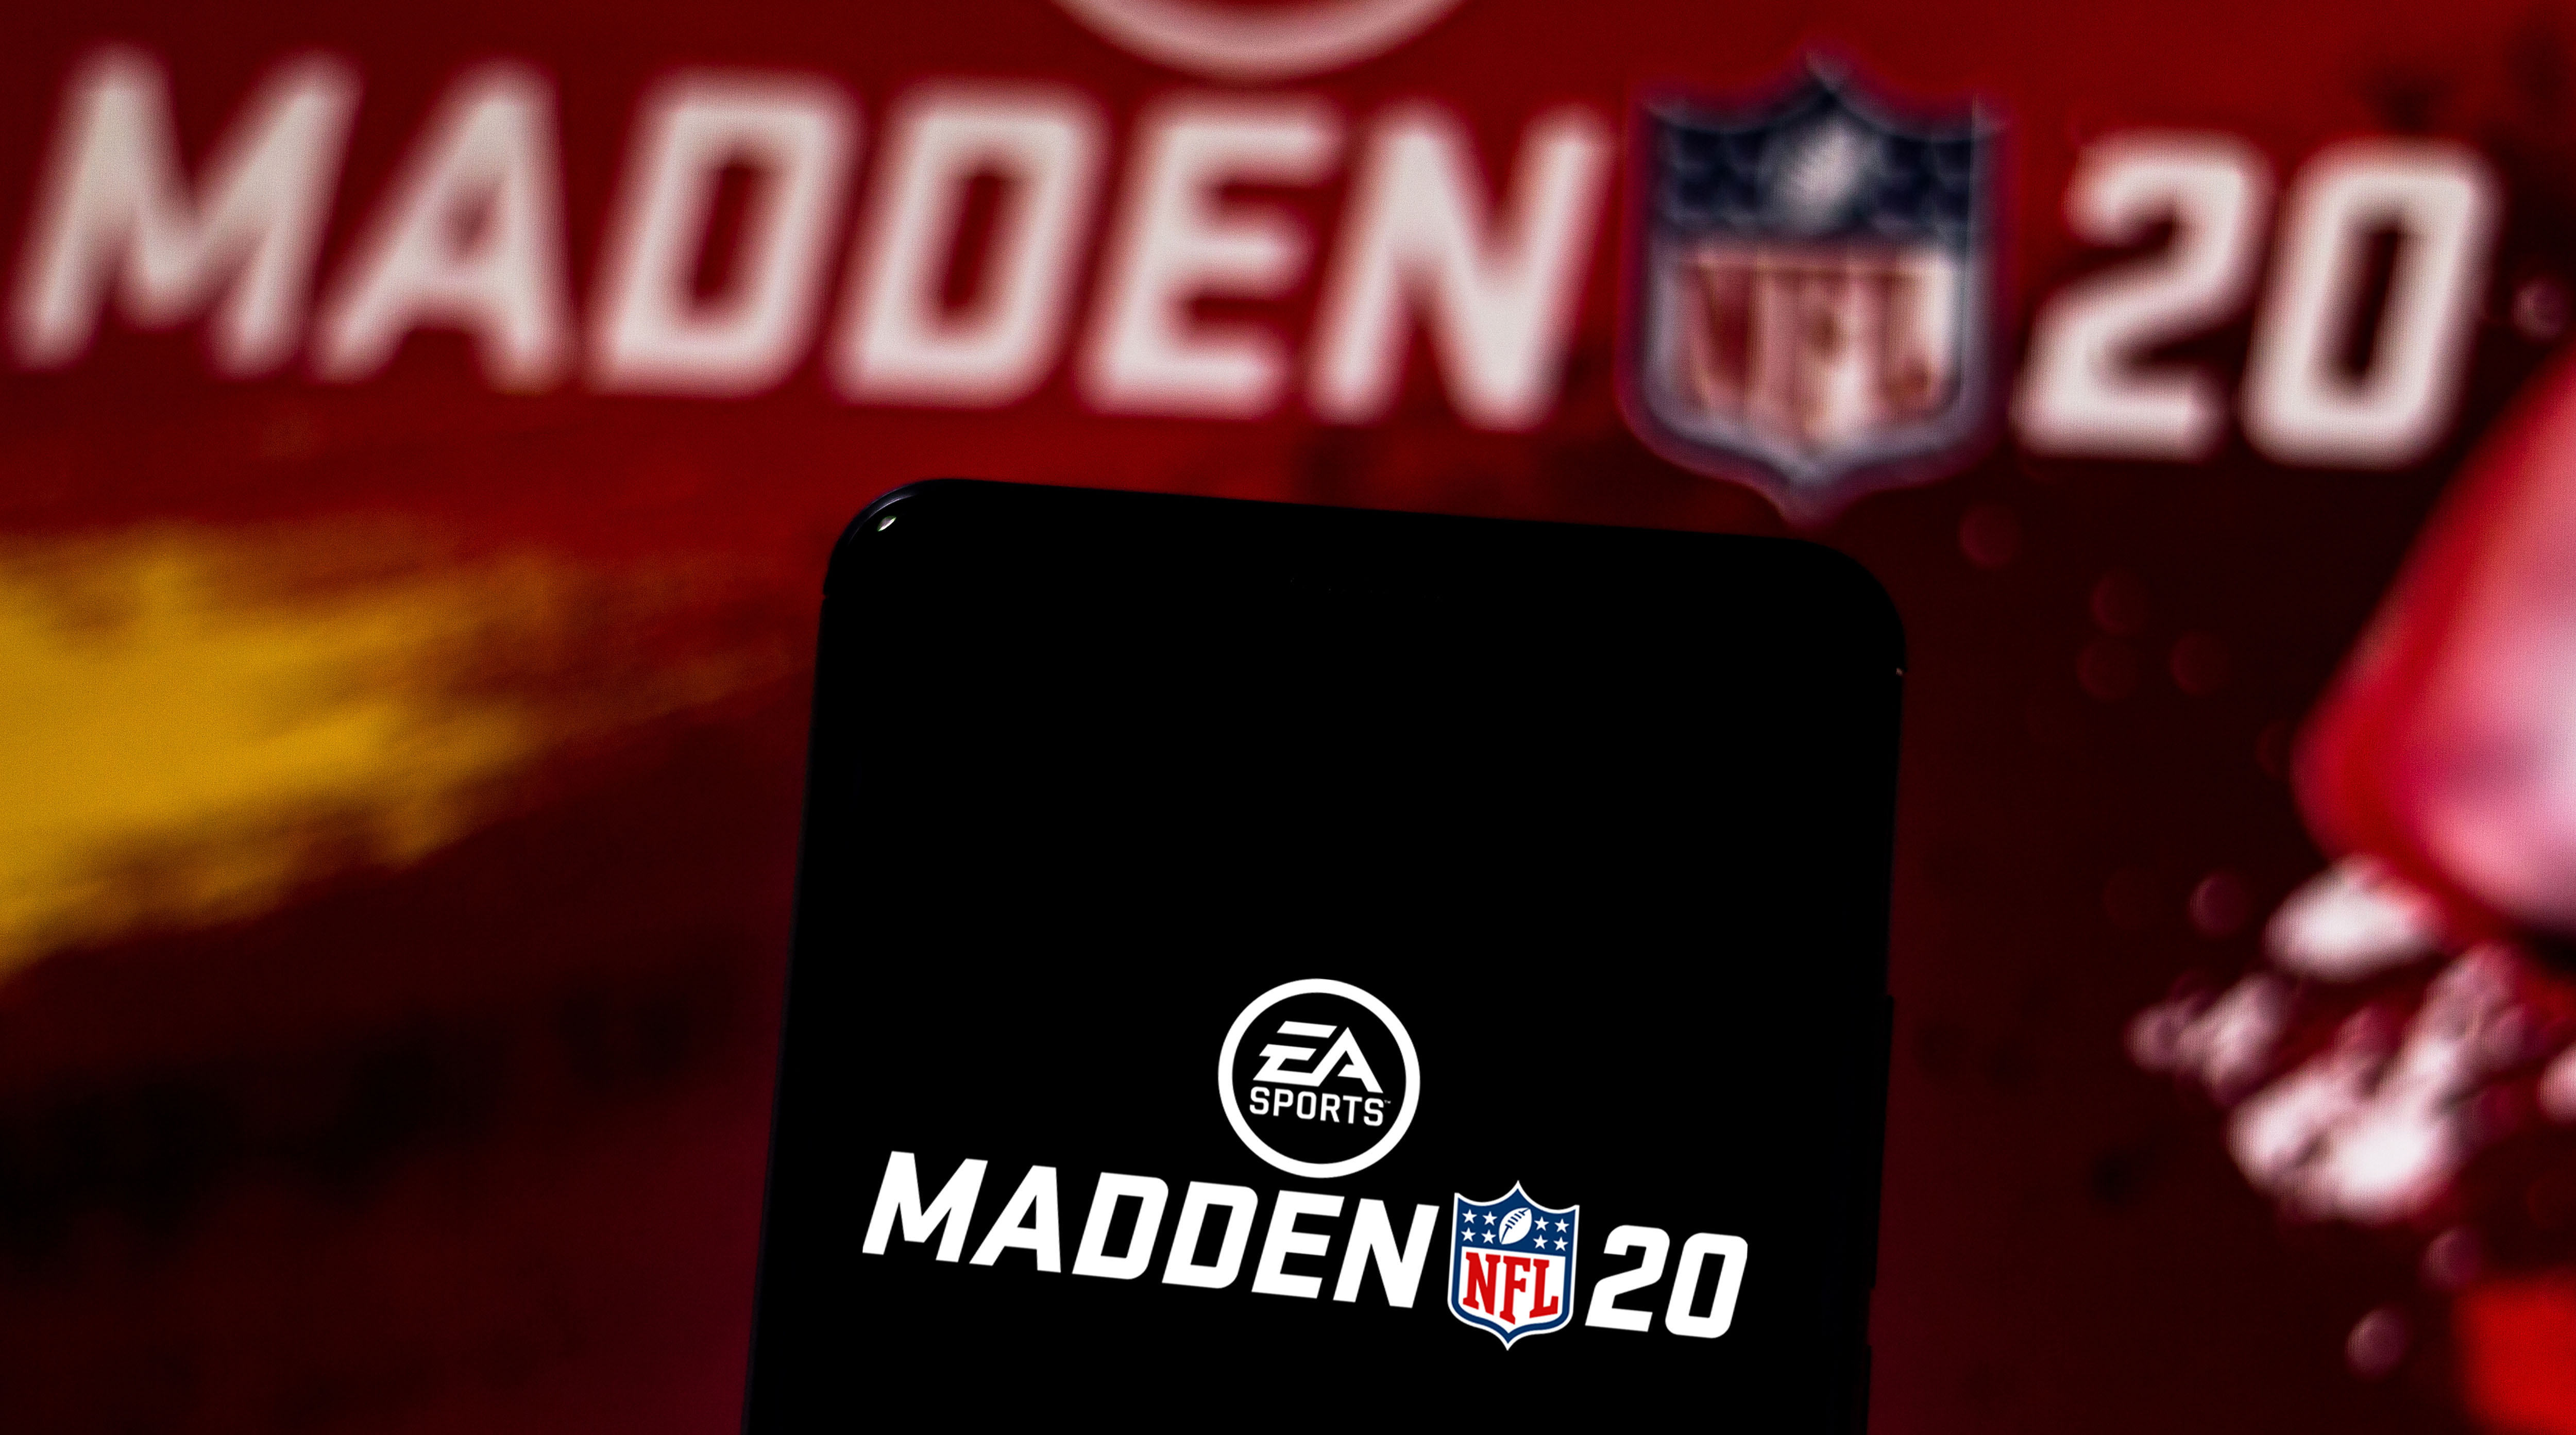 everything-you-need-to-know-about-madden-nfl-20:-release-date,-new-features,-more